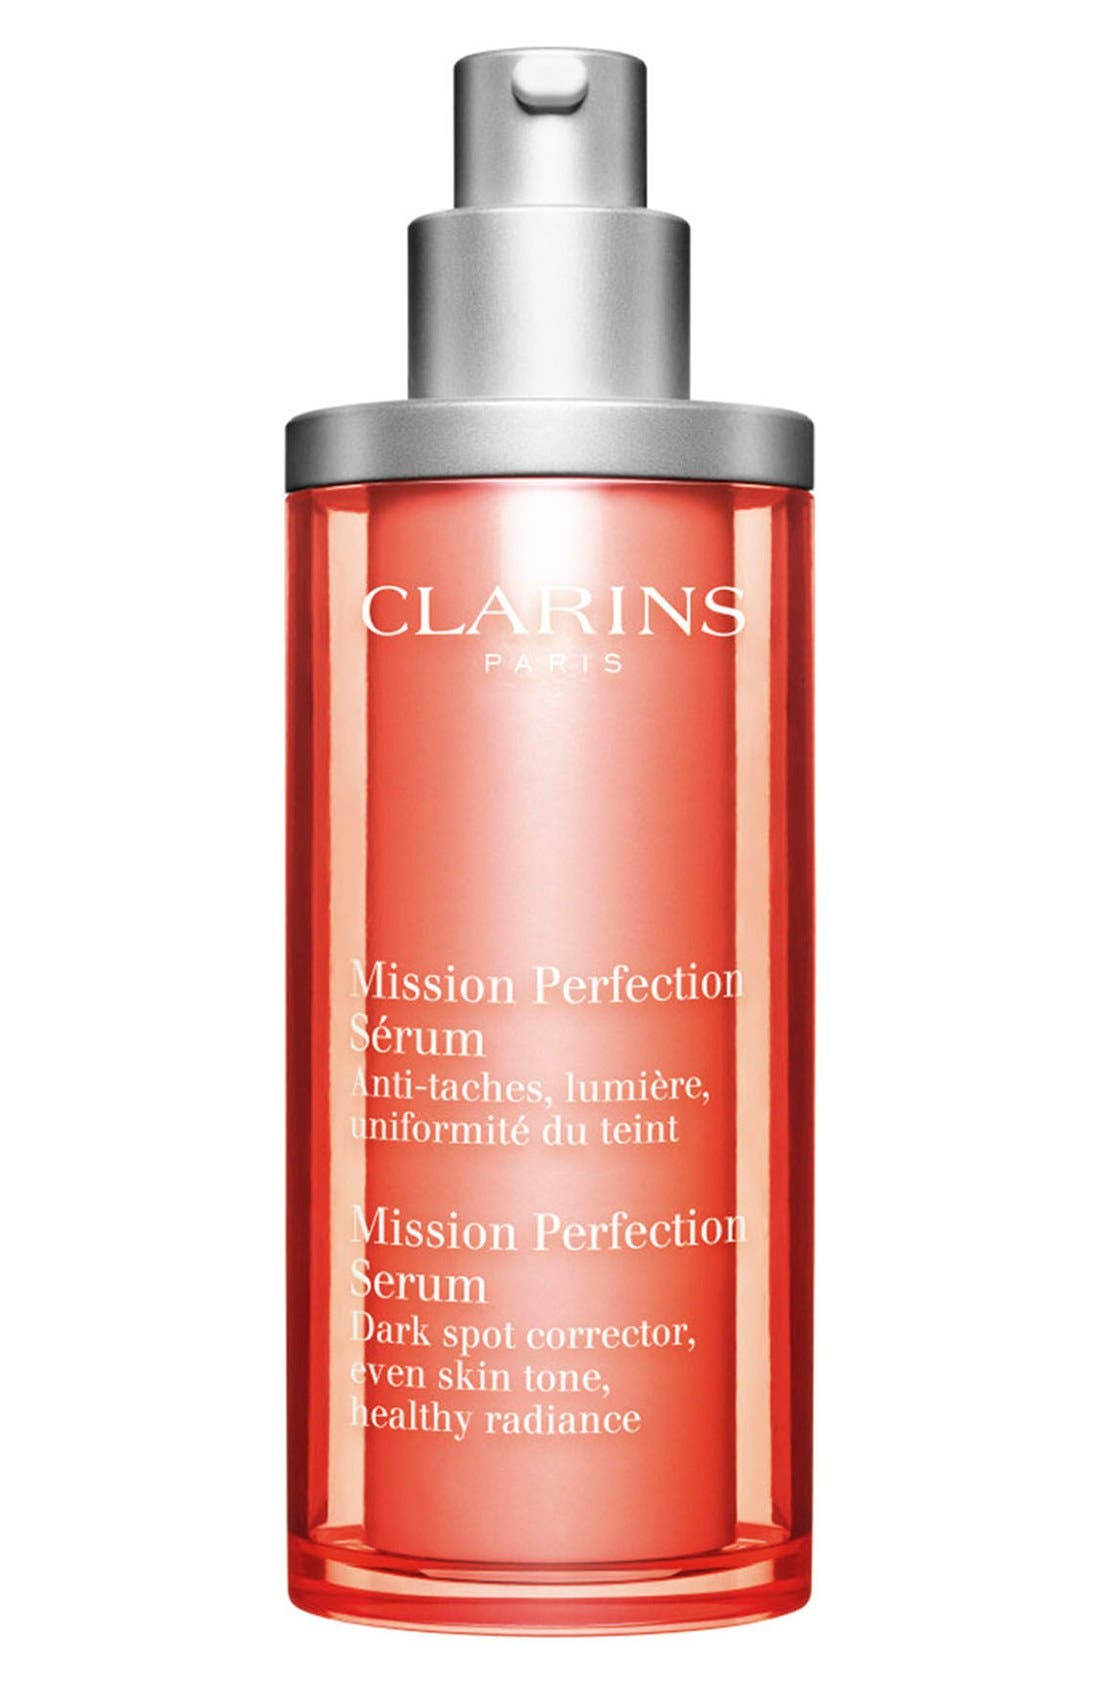 CLARINS, Mission Perfection Serum, Alternate thumbnail 4, color, NO COLOR